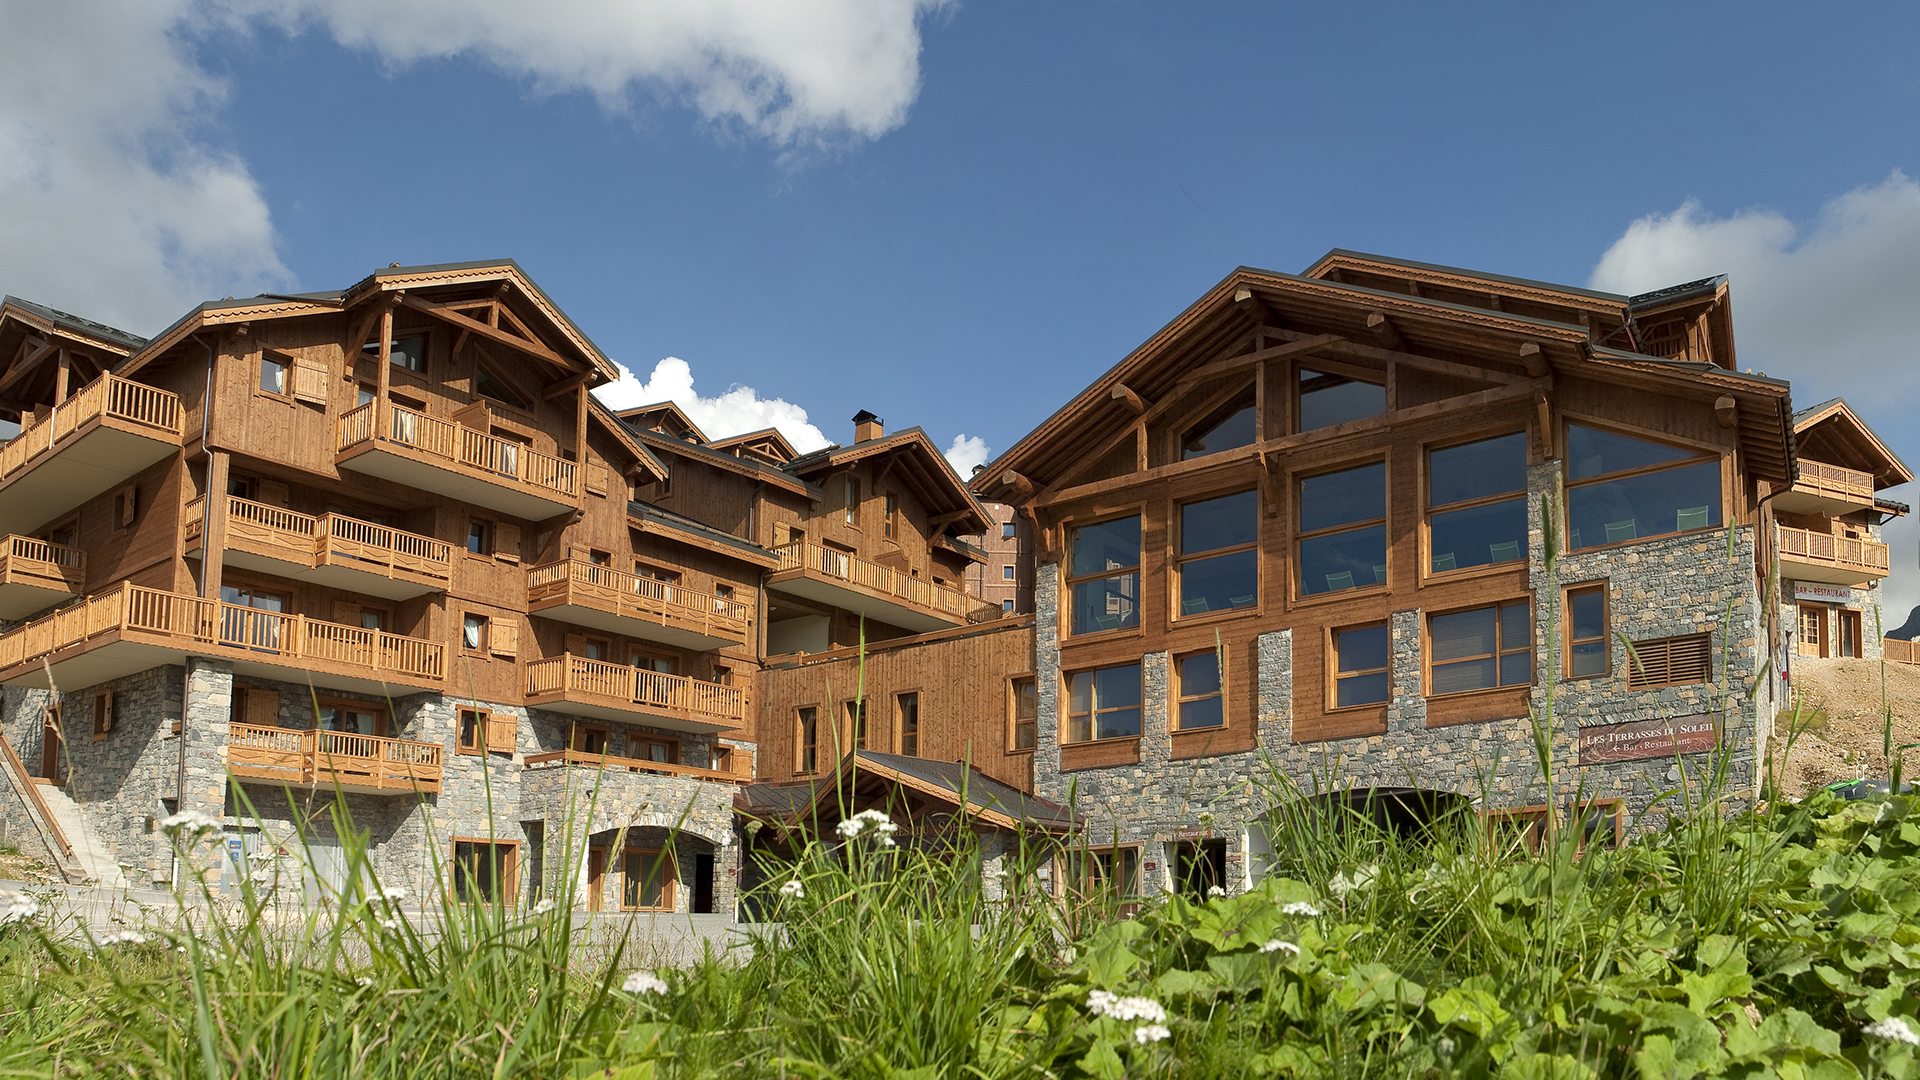 Les granges du soleil holiday apartment in la plagne - Les granges saint martin de belleville ...